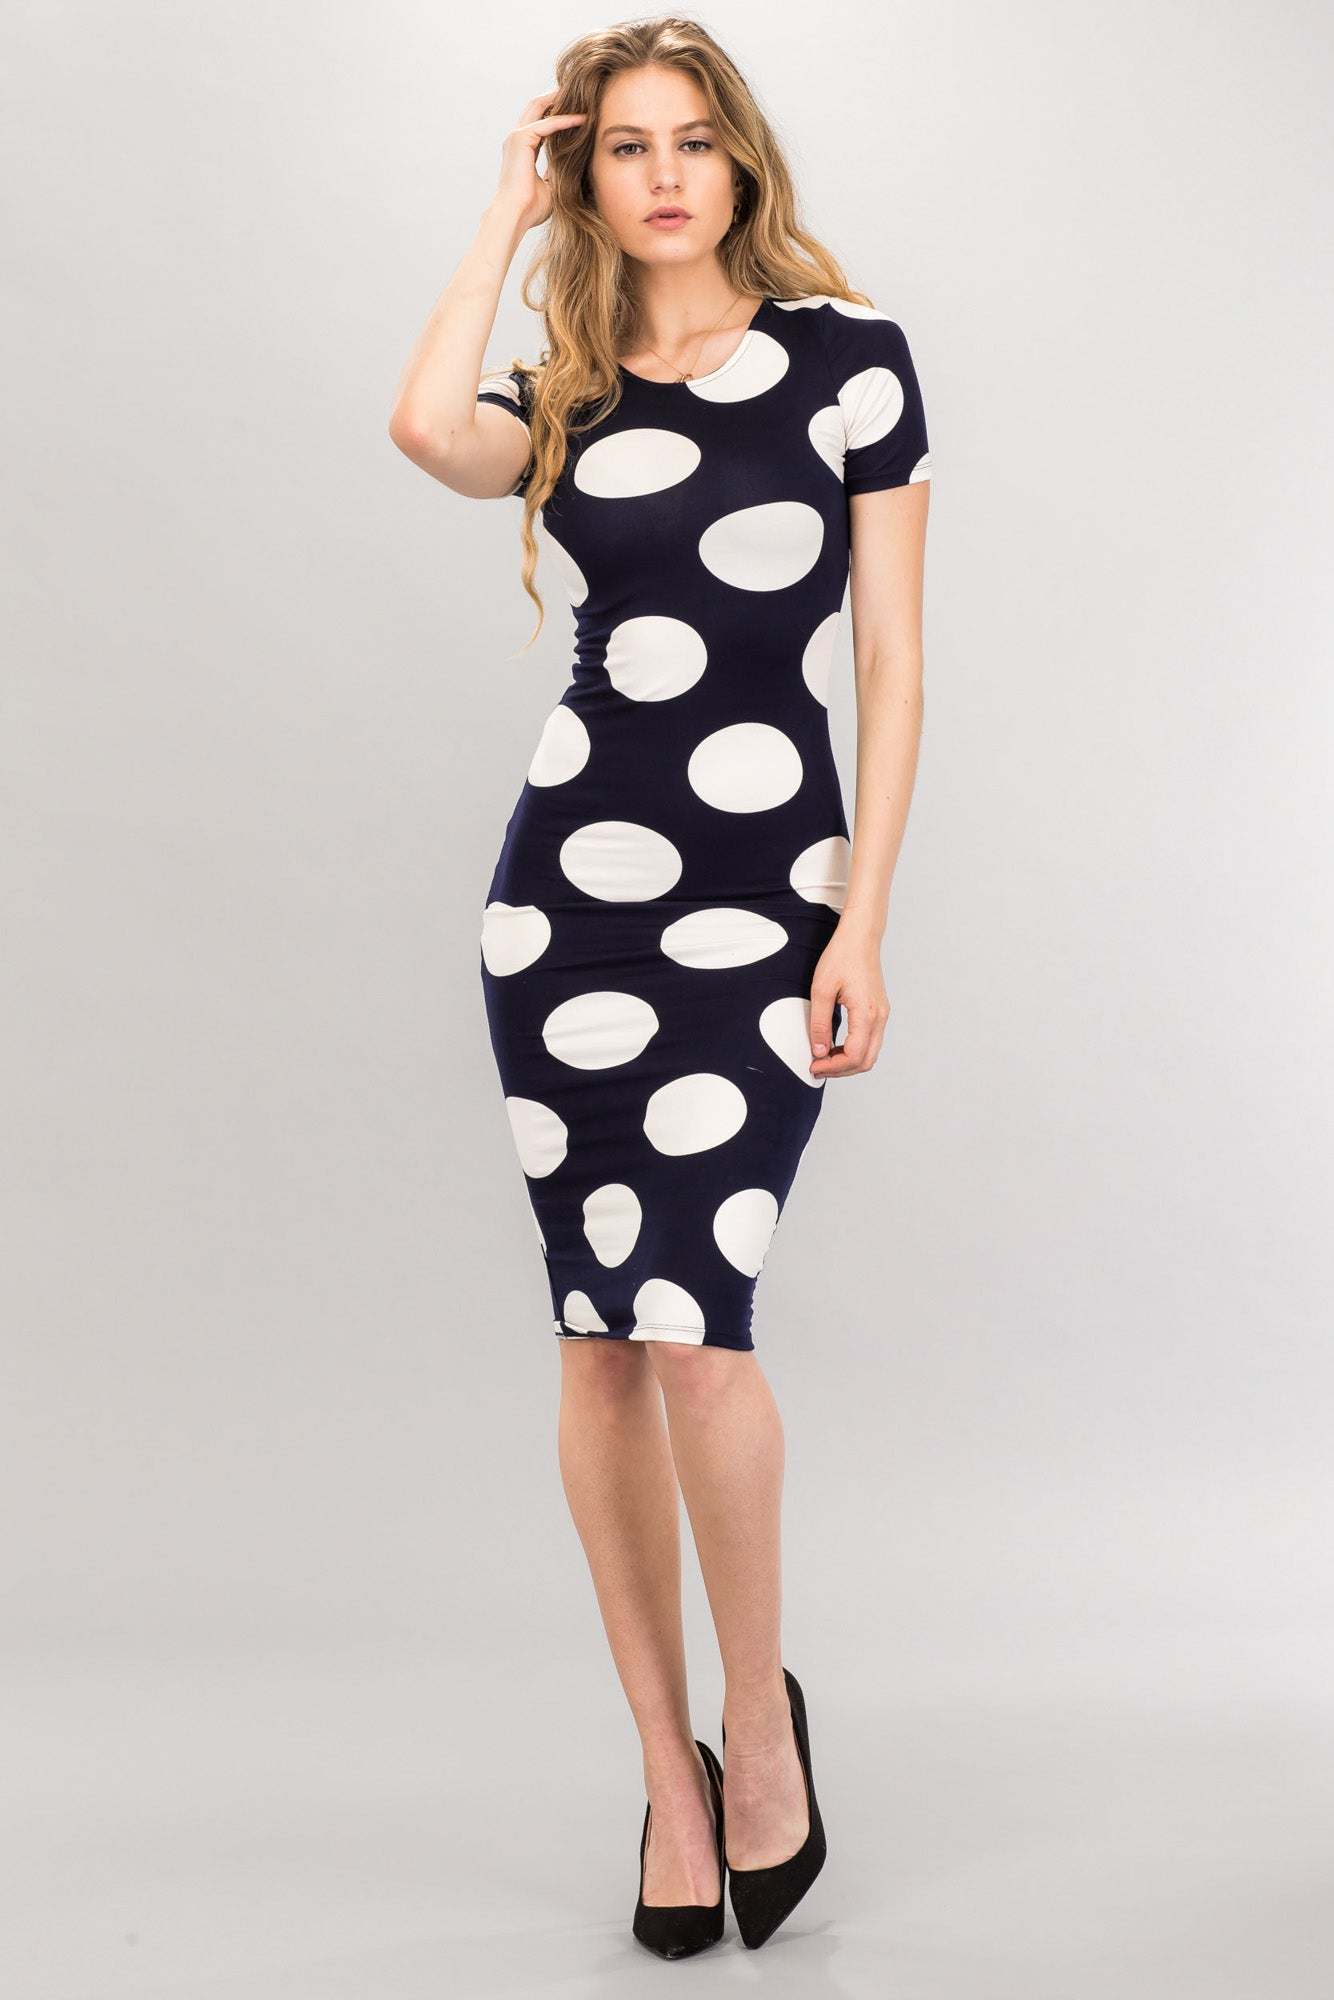 Knit Bodycon Dress - BD2190 - Capella Apparel